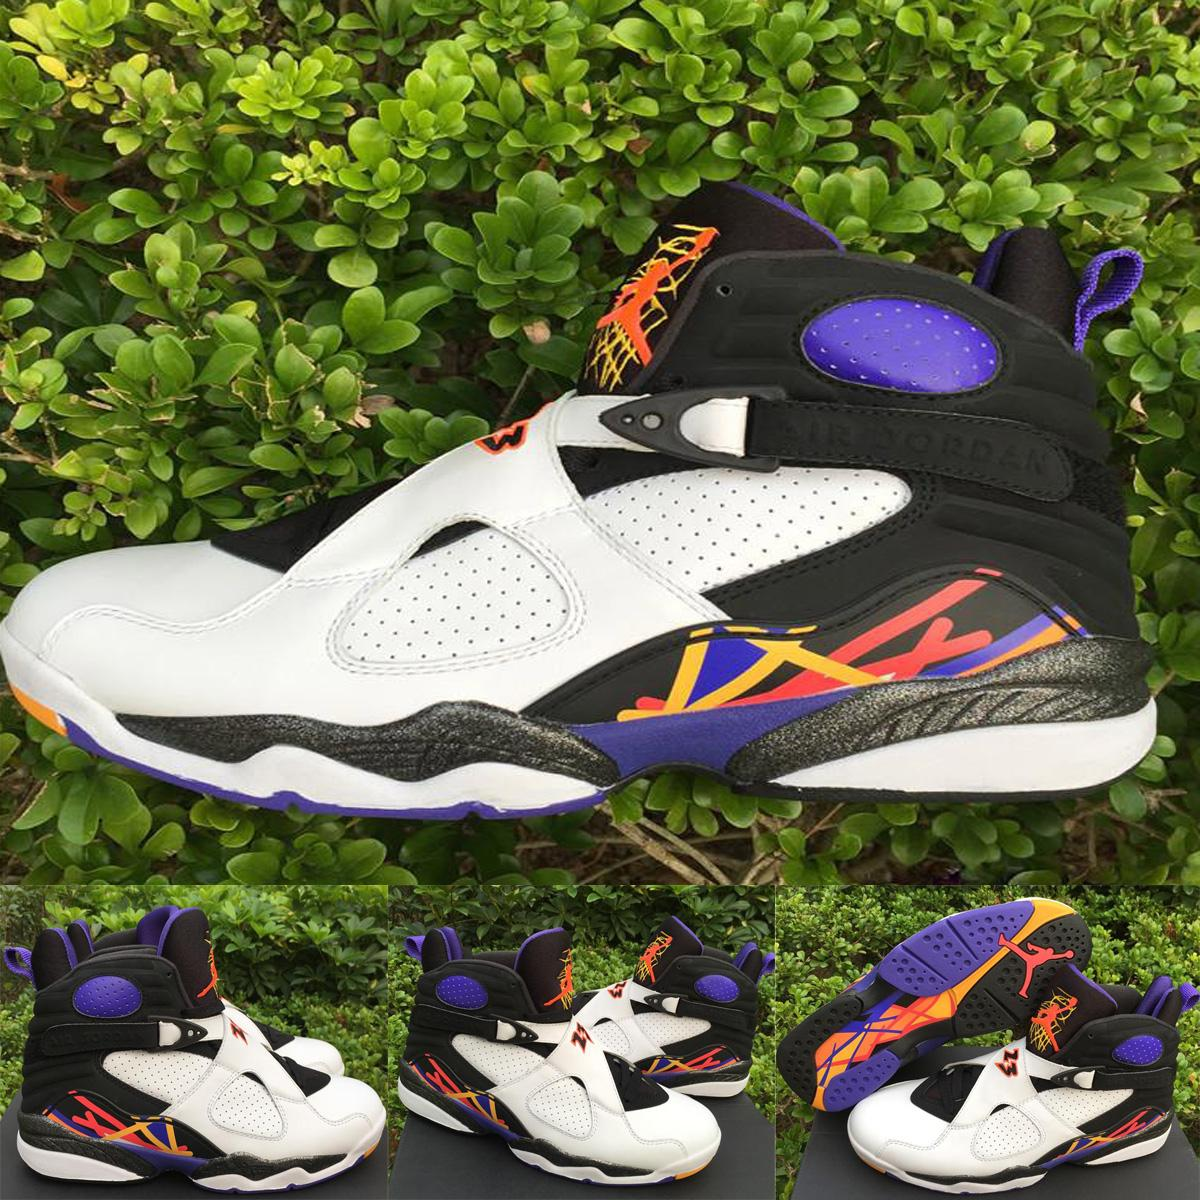 a46c80b6dc8b Nike Air Jordan 8 Retro Viii 3 Peat Three Peat White Infrared Concord Mens  Basketball Sneakers Jordan Shoes 305381 142 100% Original Quality Sports  Shoes ...